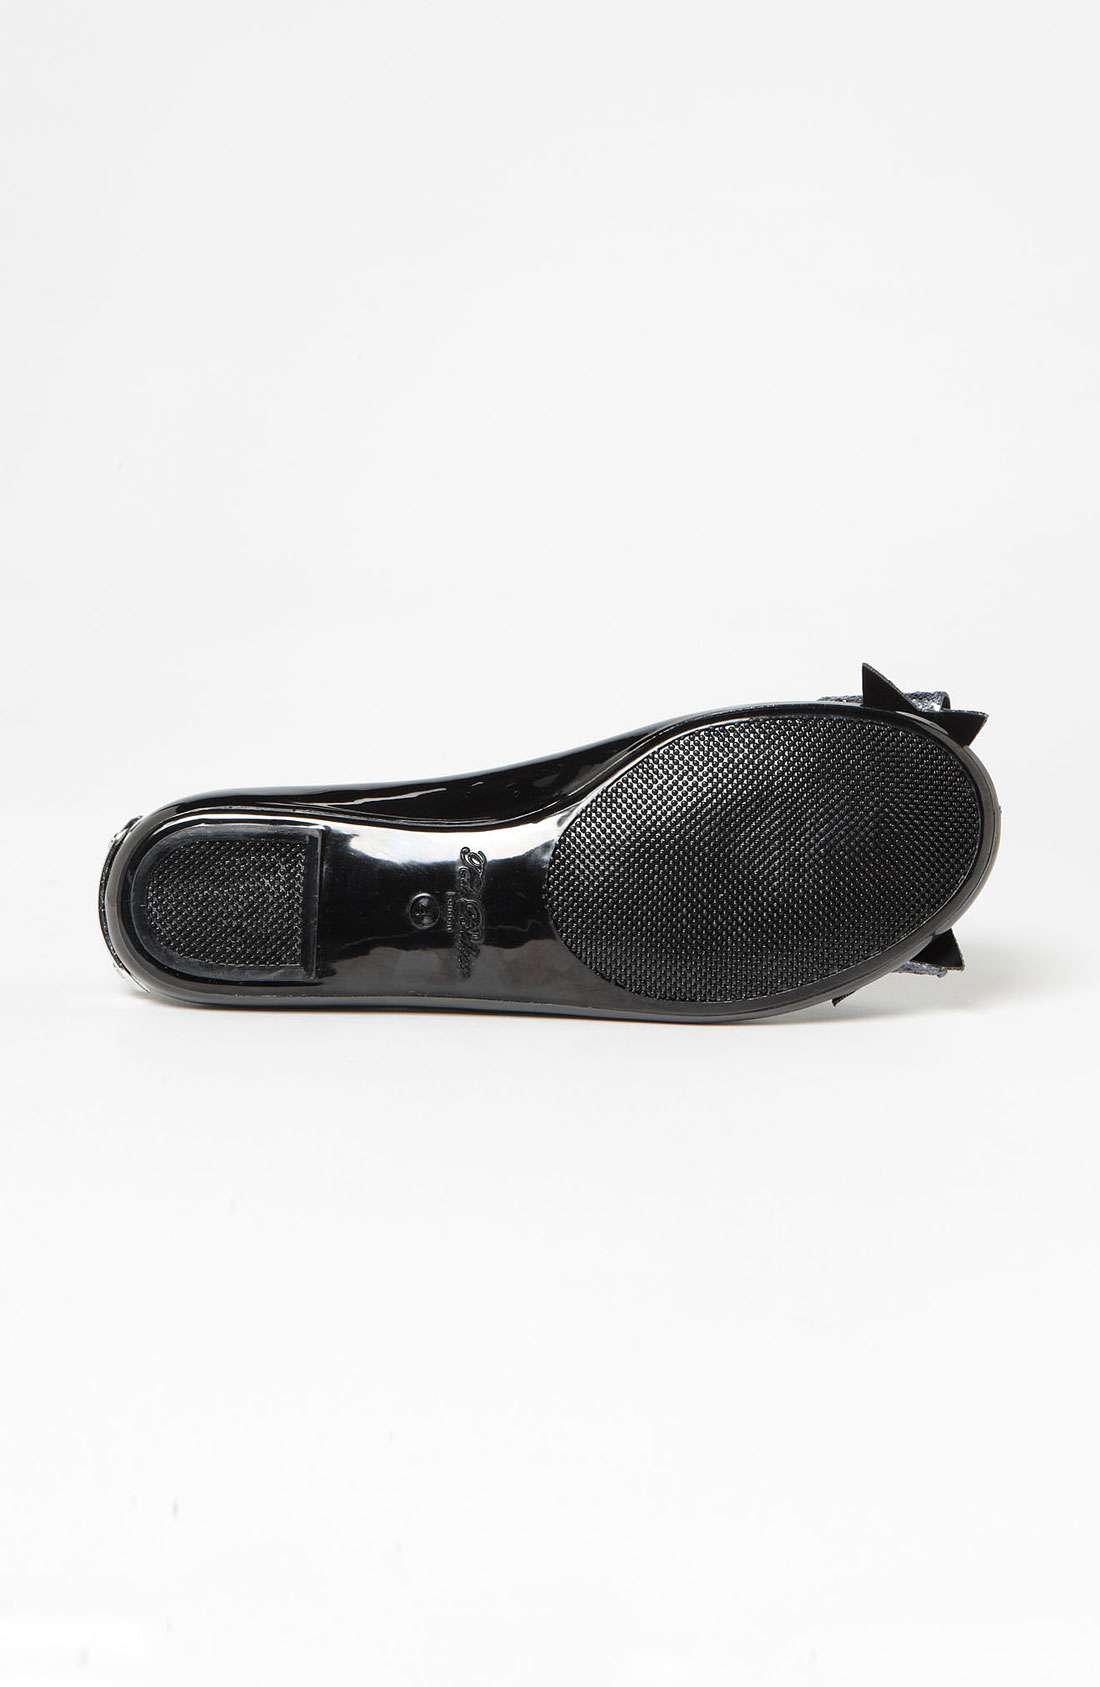 Black Ted Baker Shoes With Glitter Silver Bow